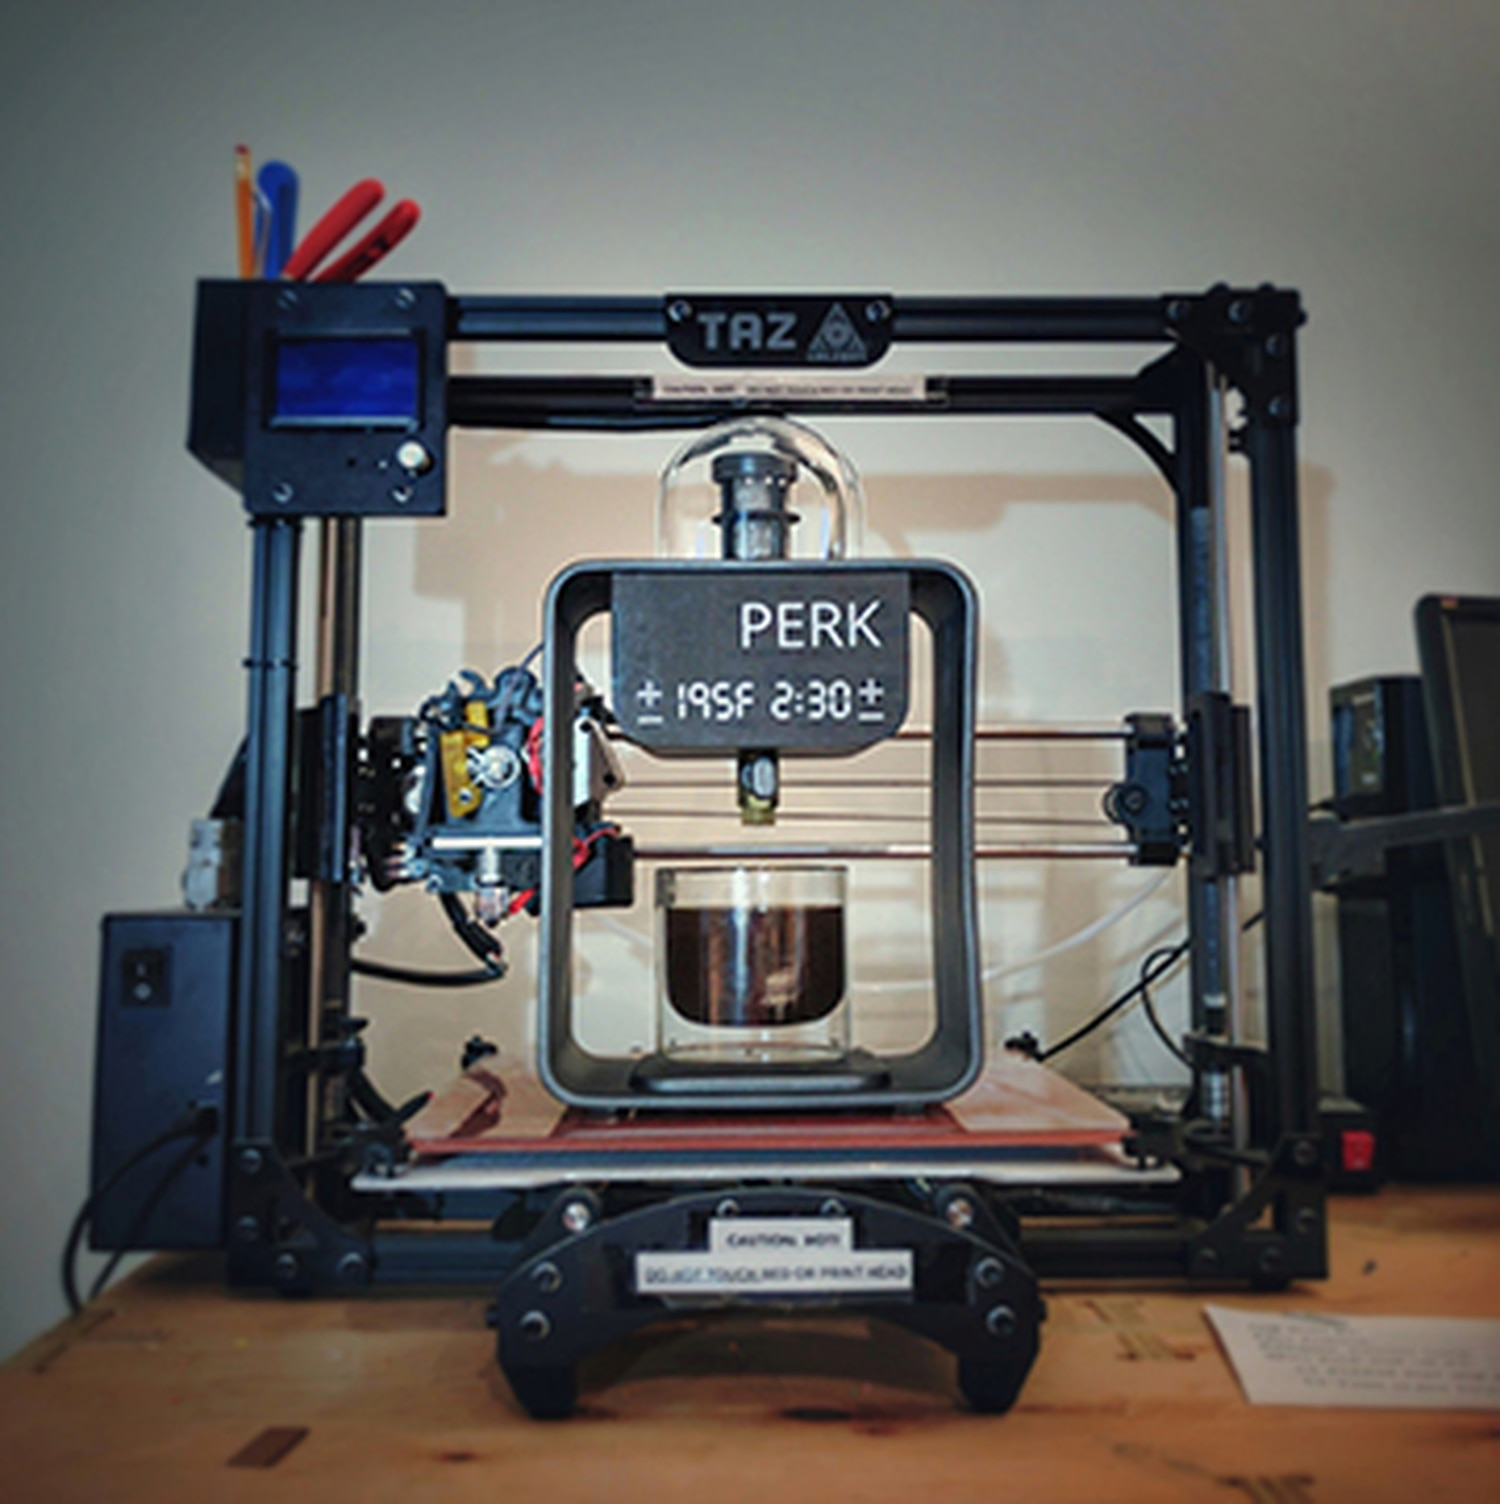 PERK becomes self-aware on the lap of a 3D printer. It percolates quietly as it contemplates Asimov's three laws of robotics.